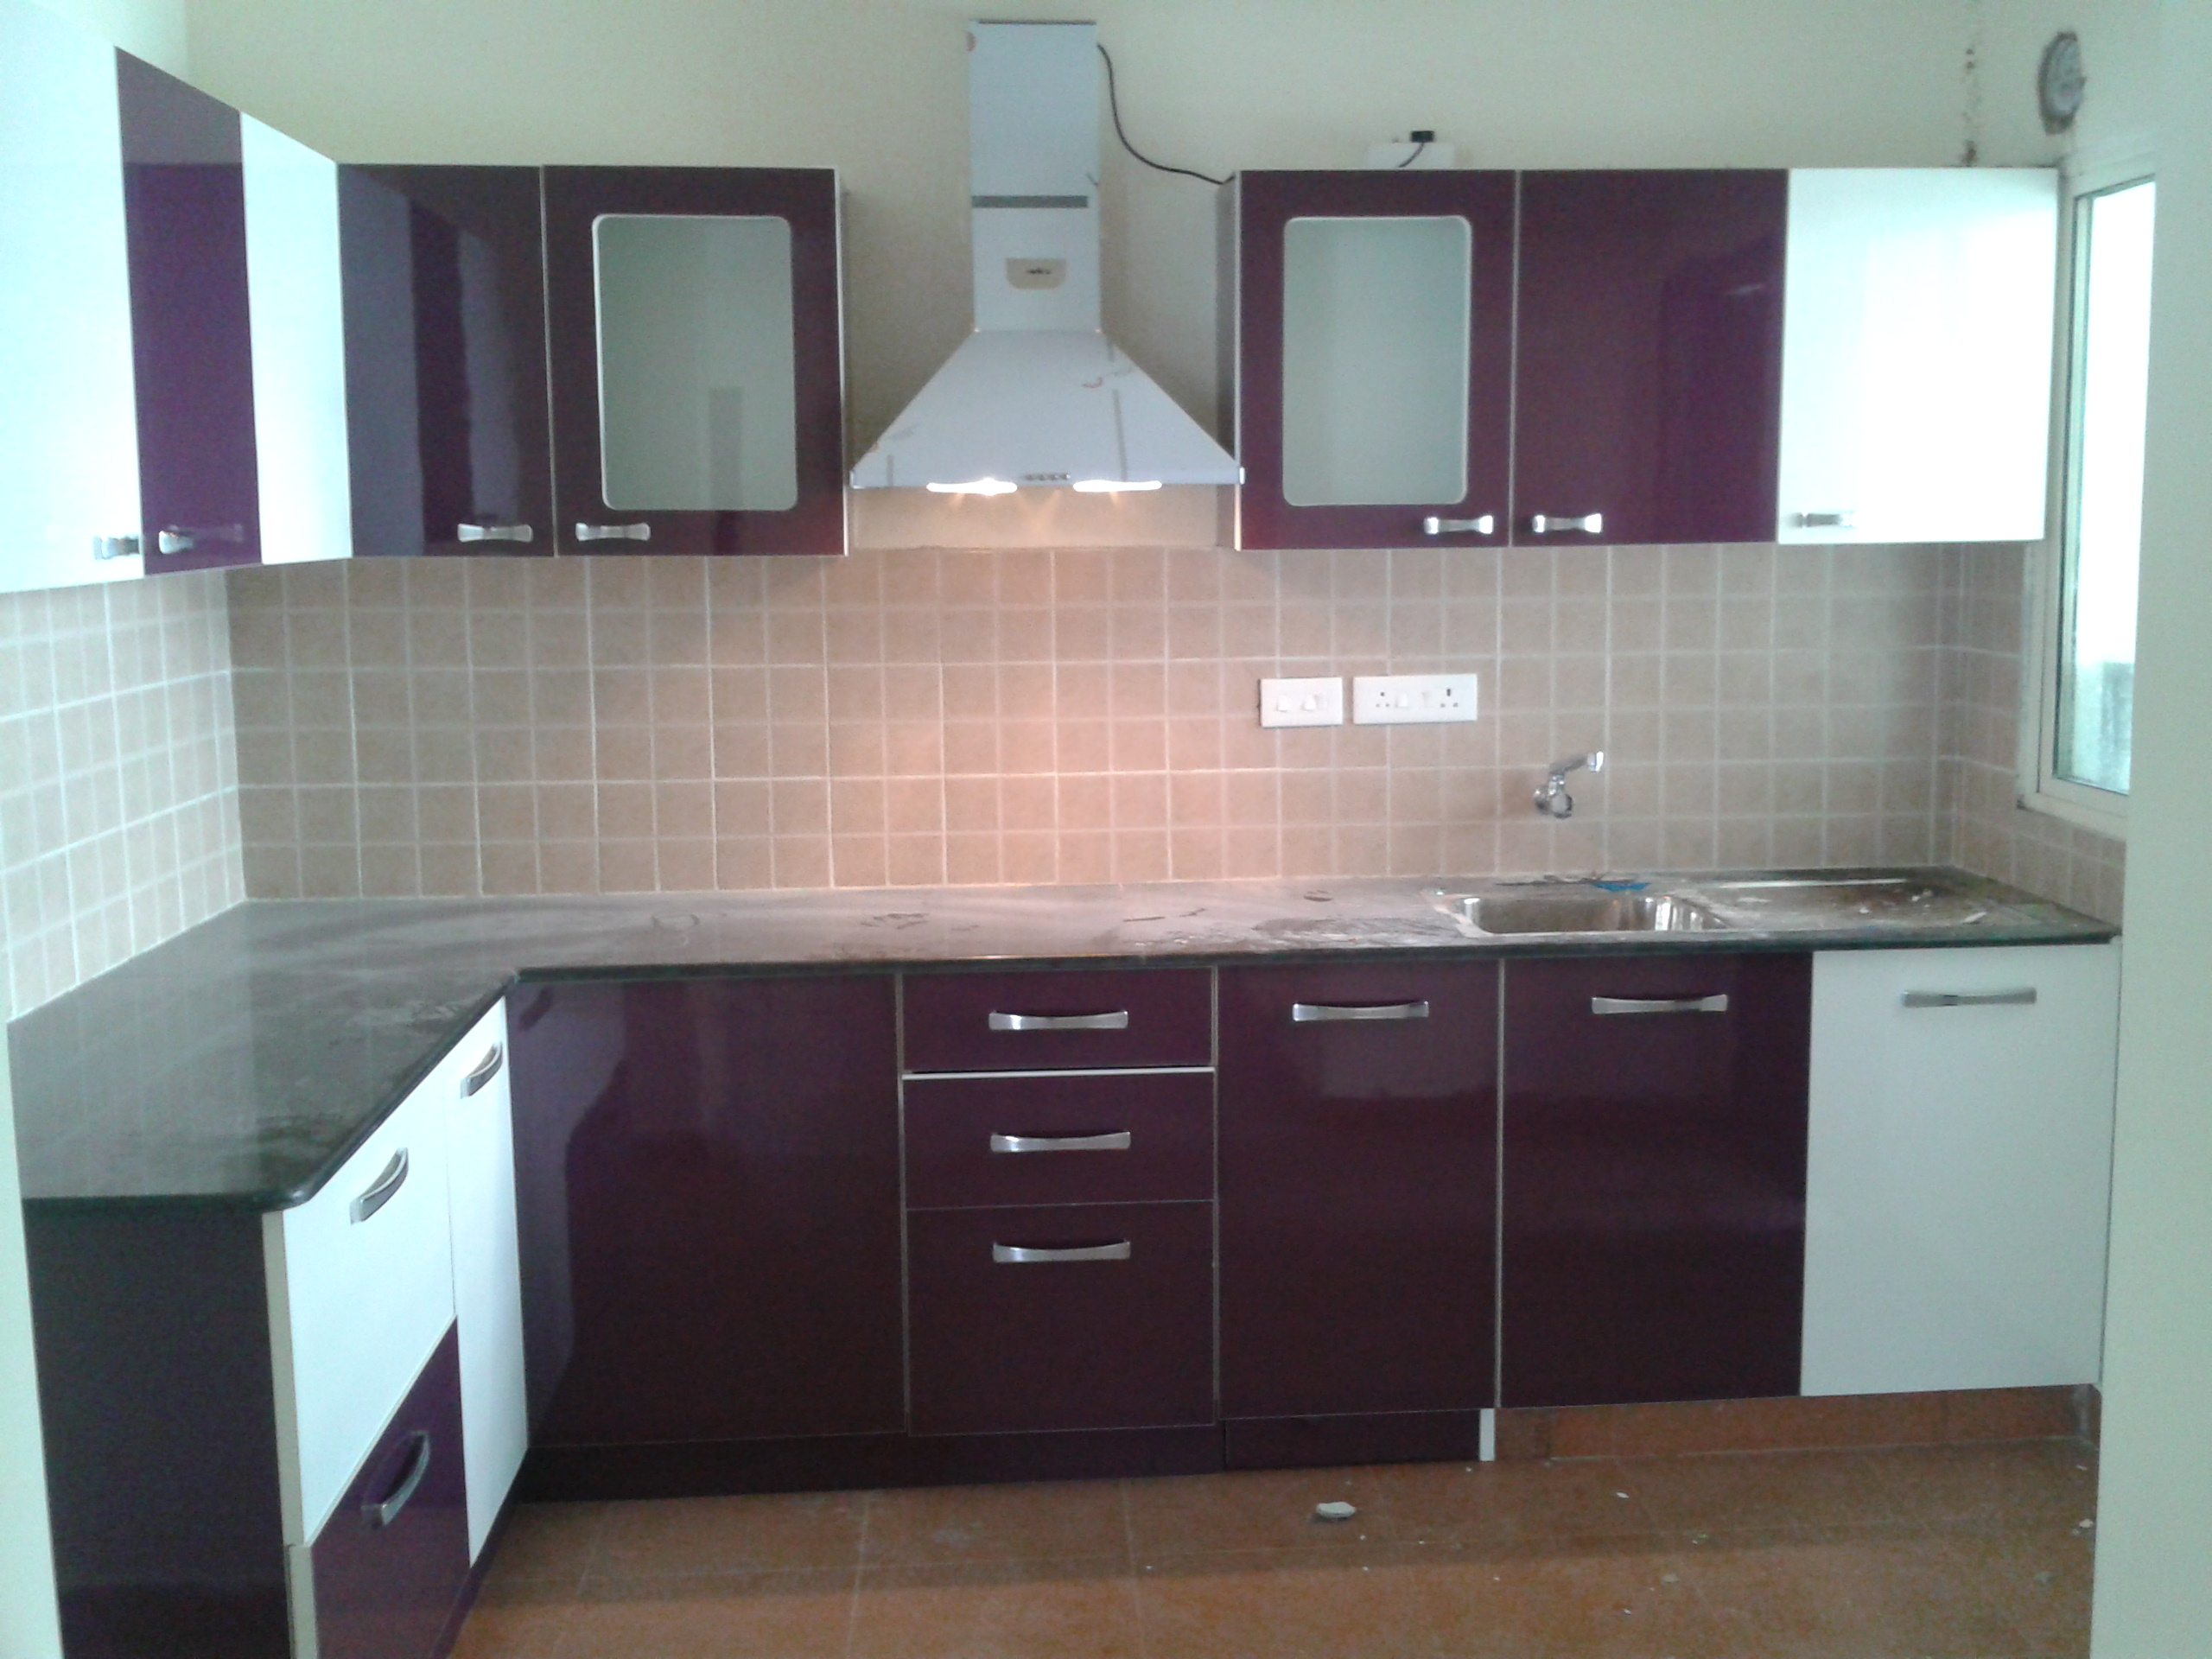 Top Modular Kitchen - Bangalore 2560 x 1920 · 1109 kB · jpeg